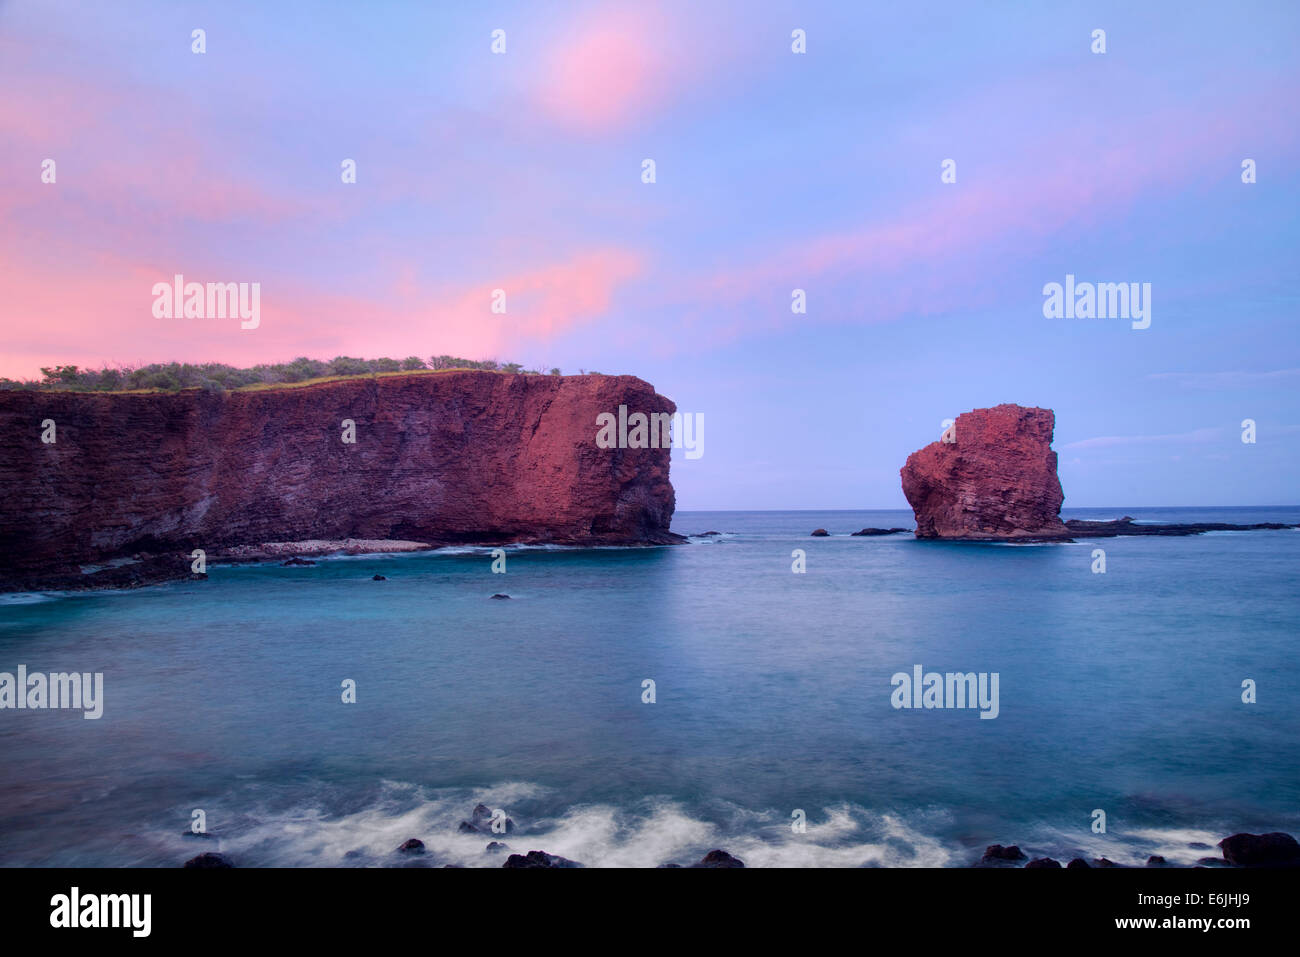 Sweetheart Rock au coucher du soleil. Lanai, Hawaii Photo Stock